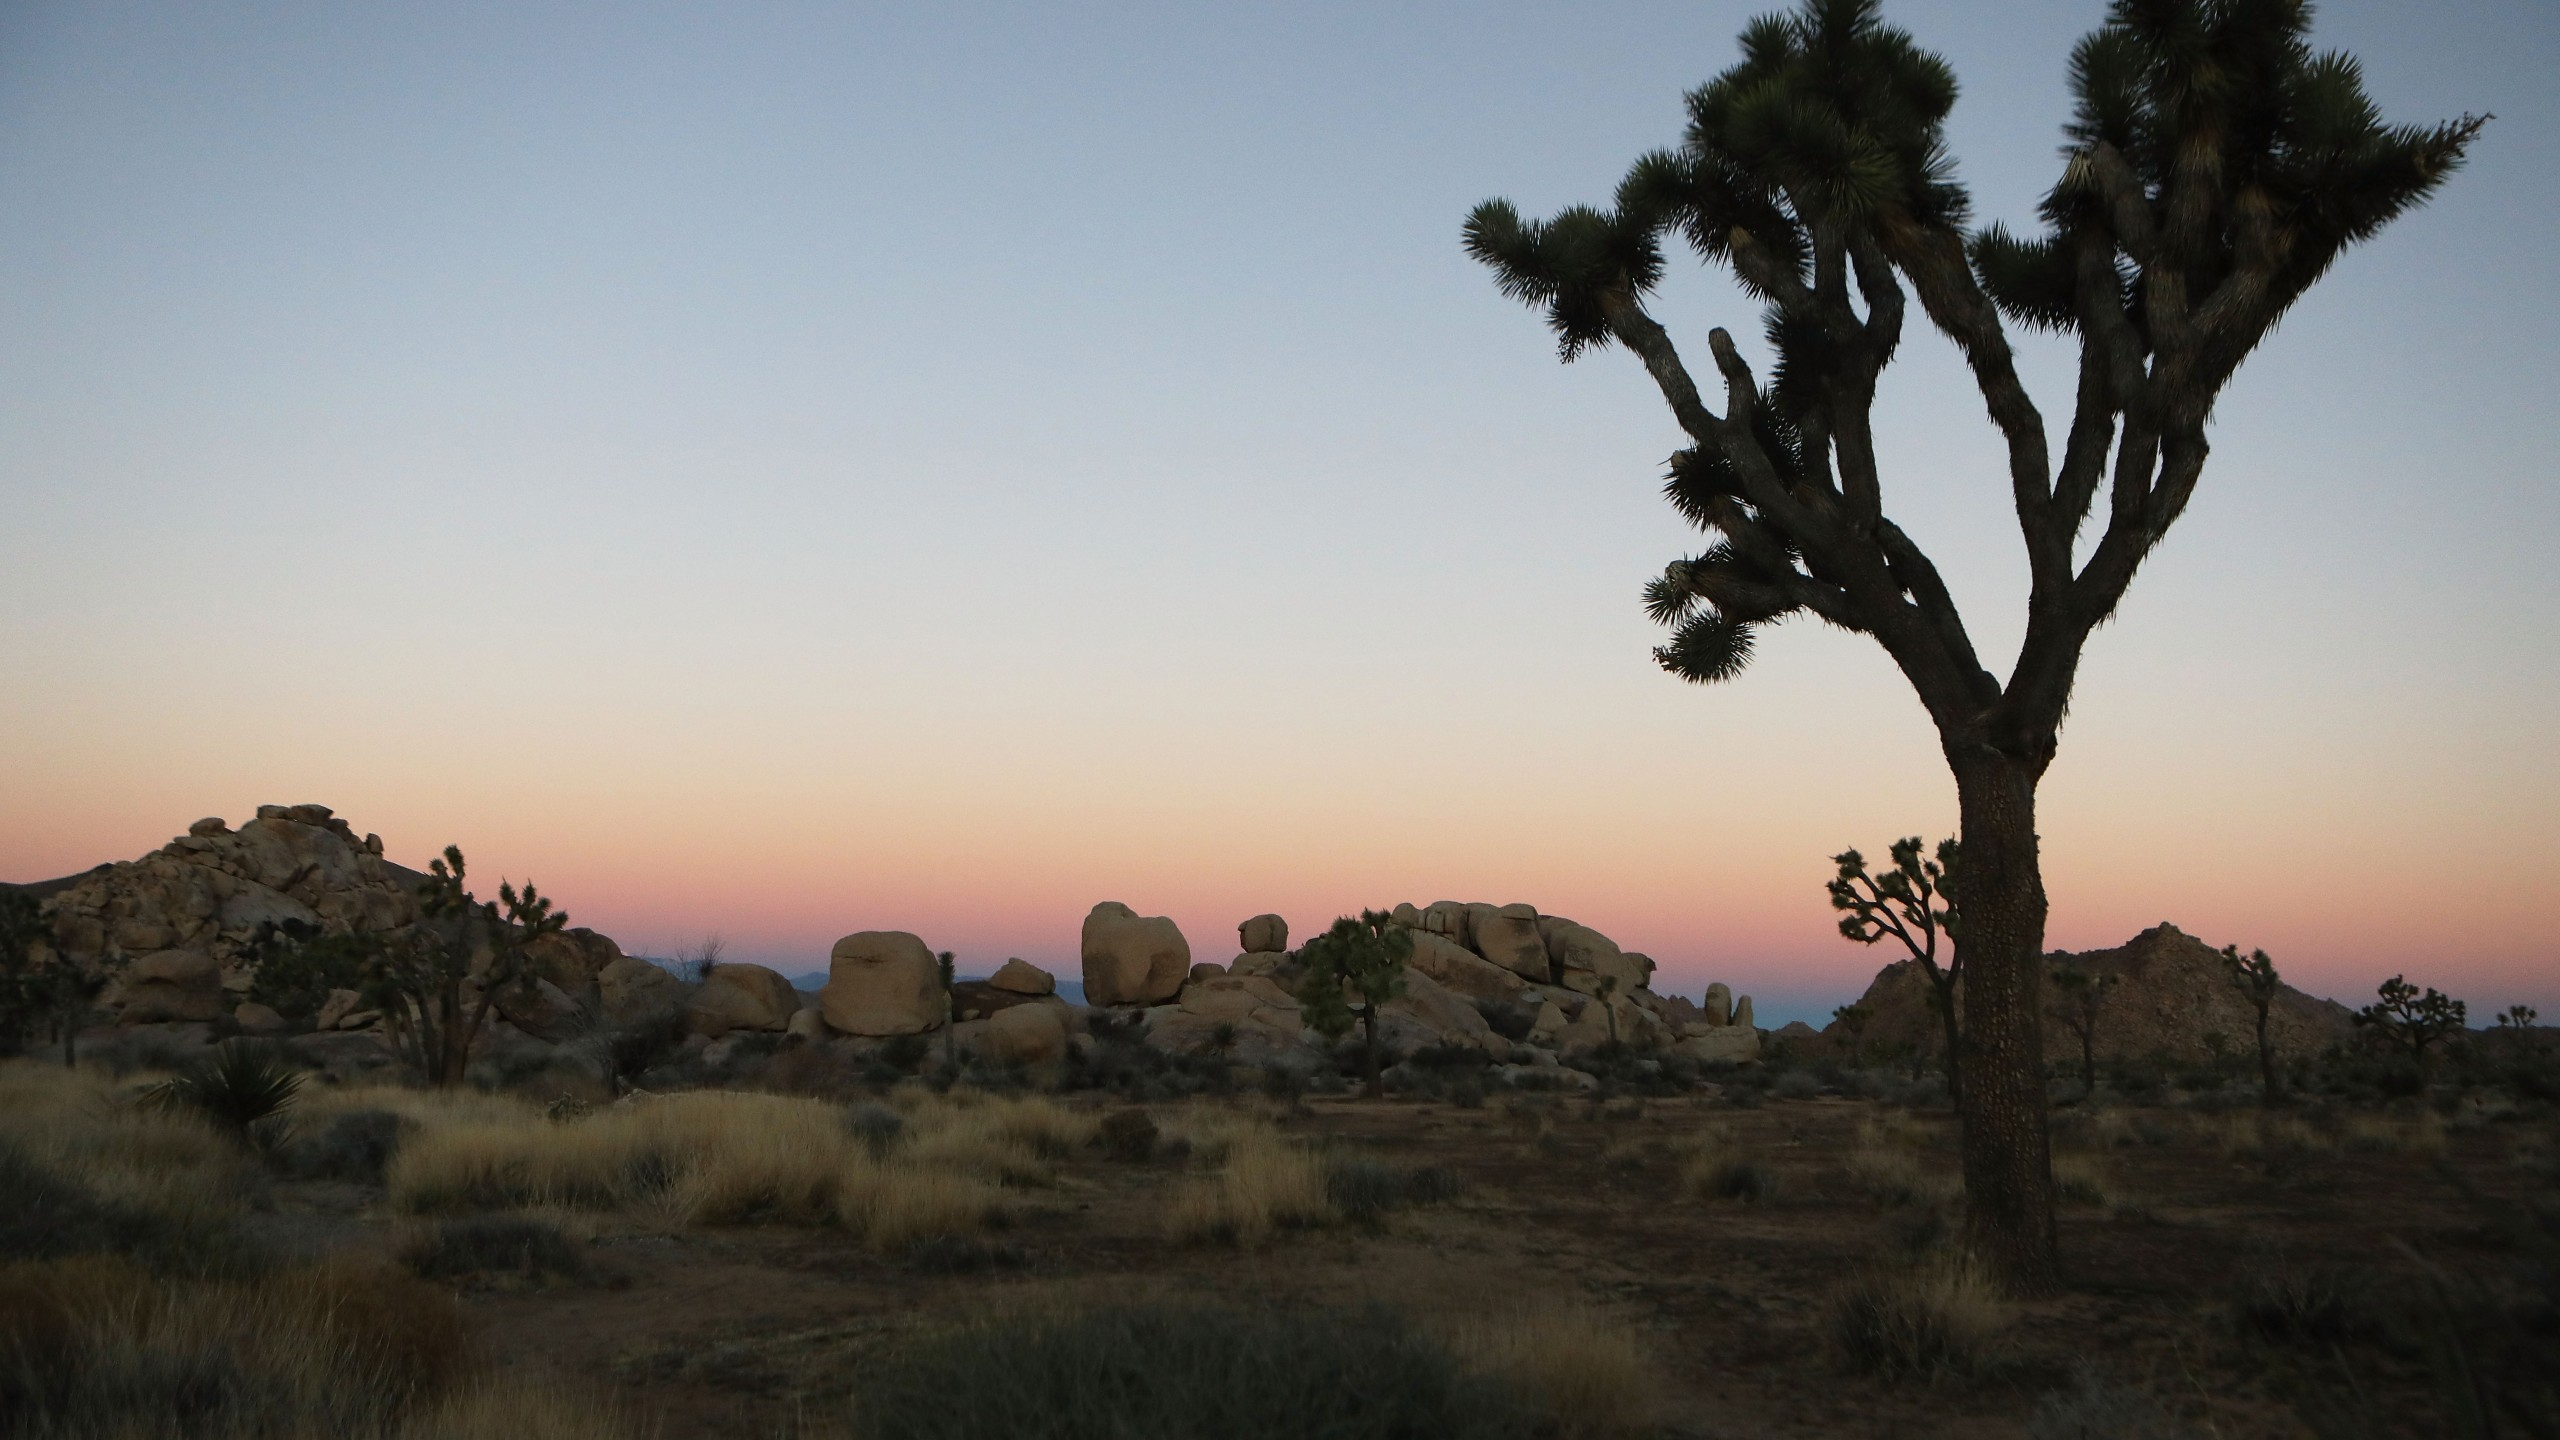 A Joshua tree stands at Joshua Tree National Park on Jan. 4, 2019. (Mario Tama / Getty Images)